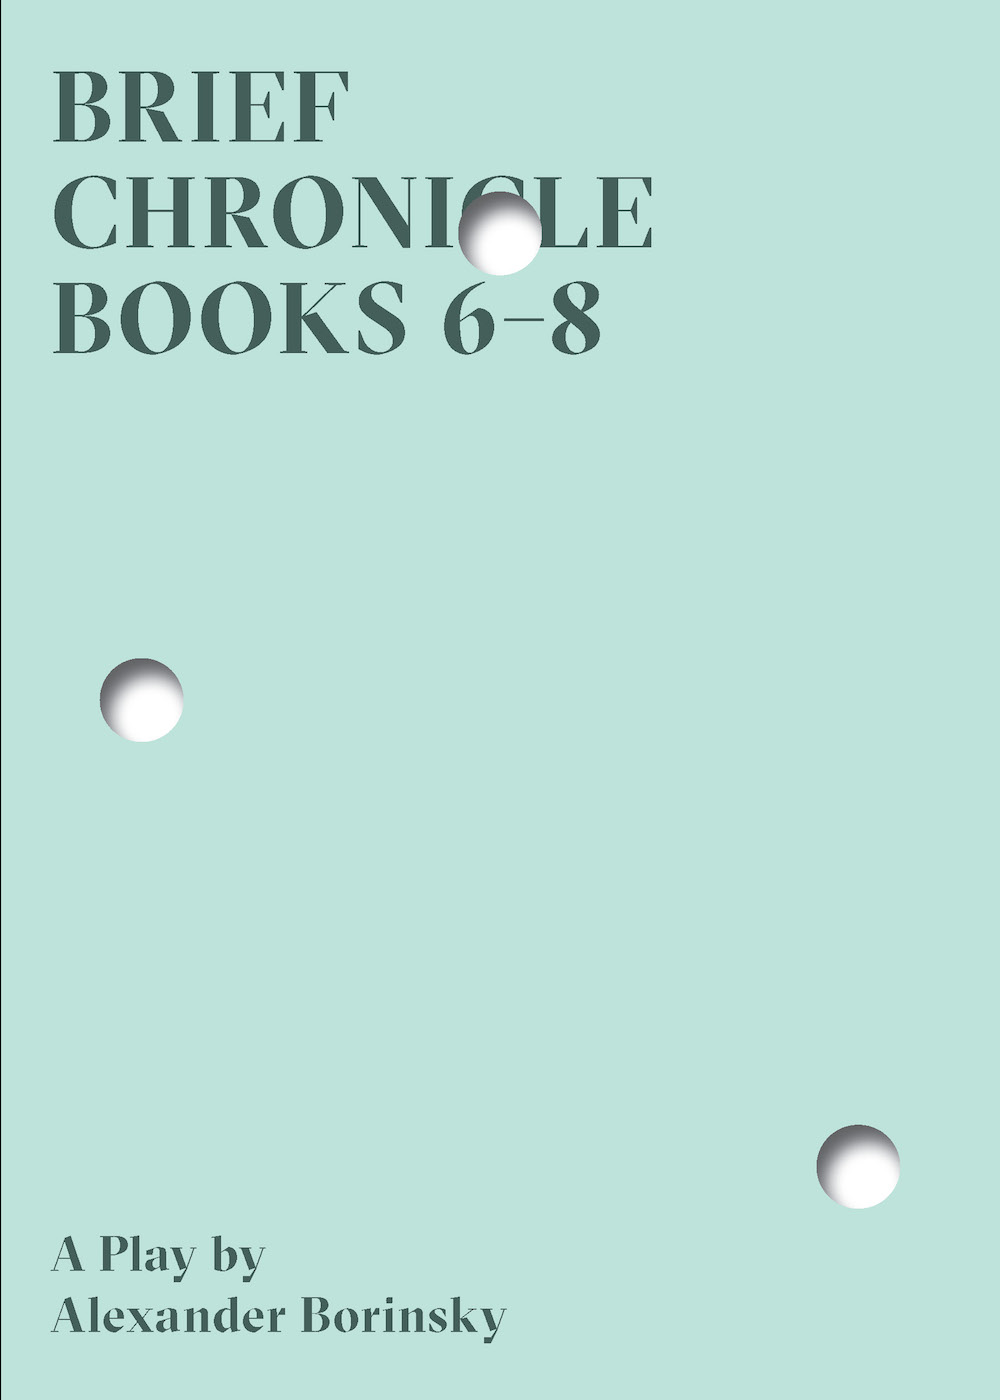 Brief Chronicle, Books 6-8